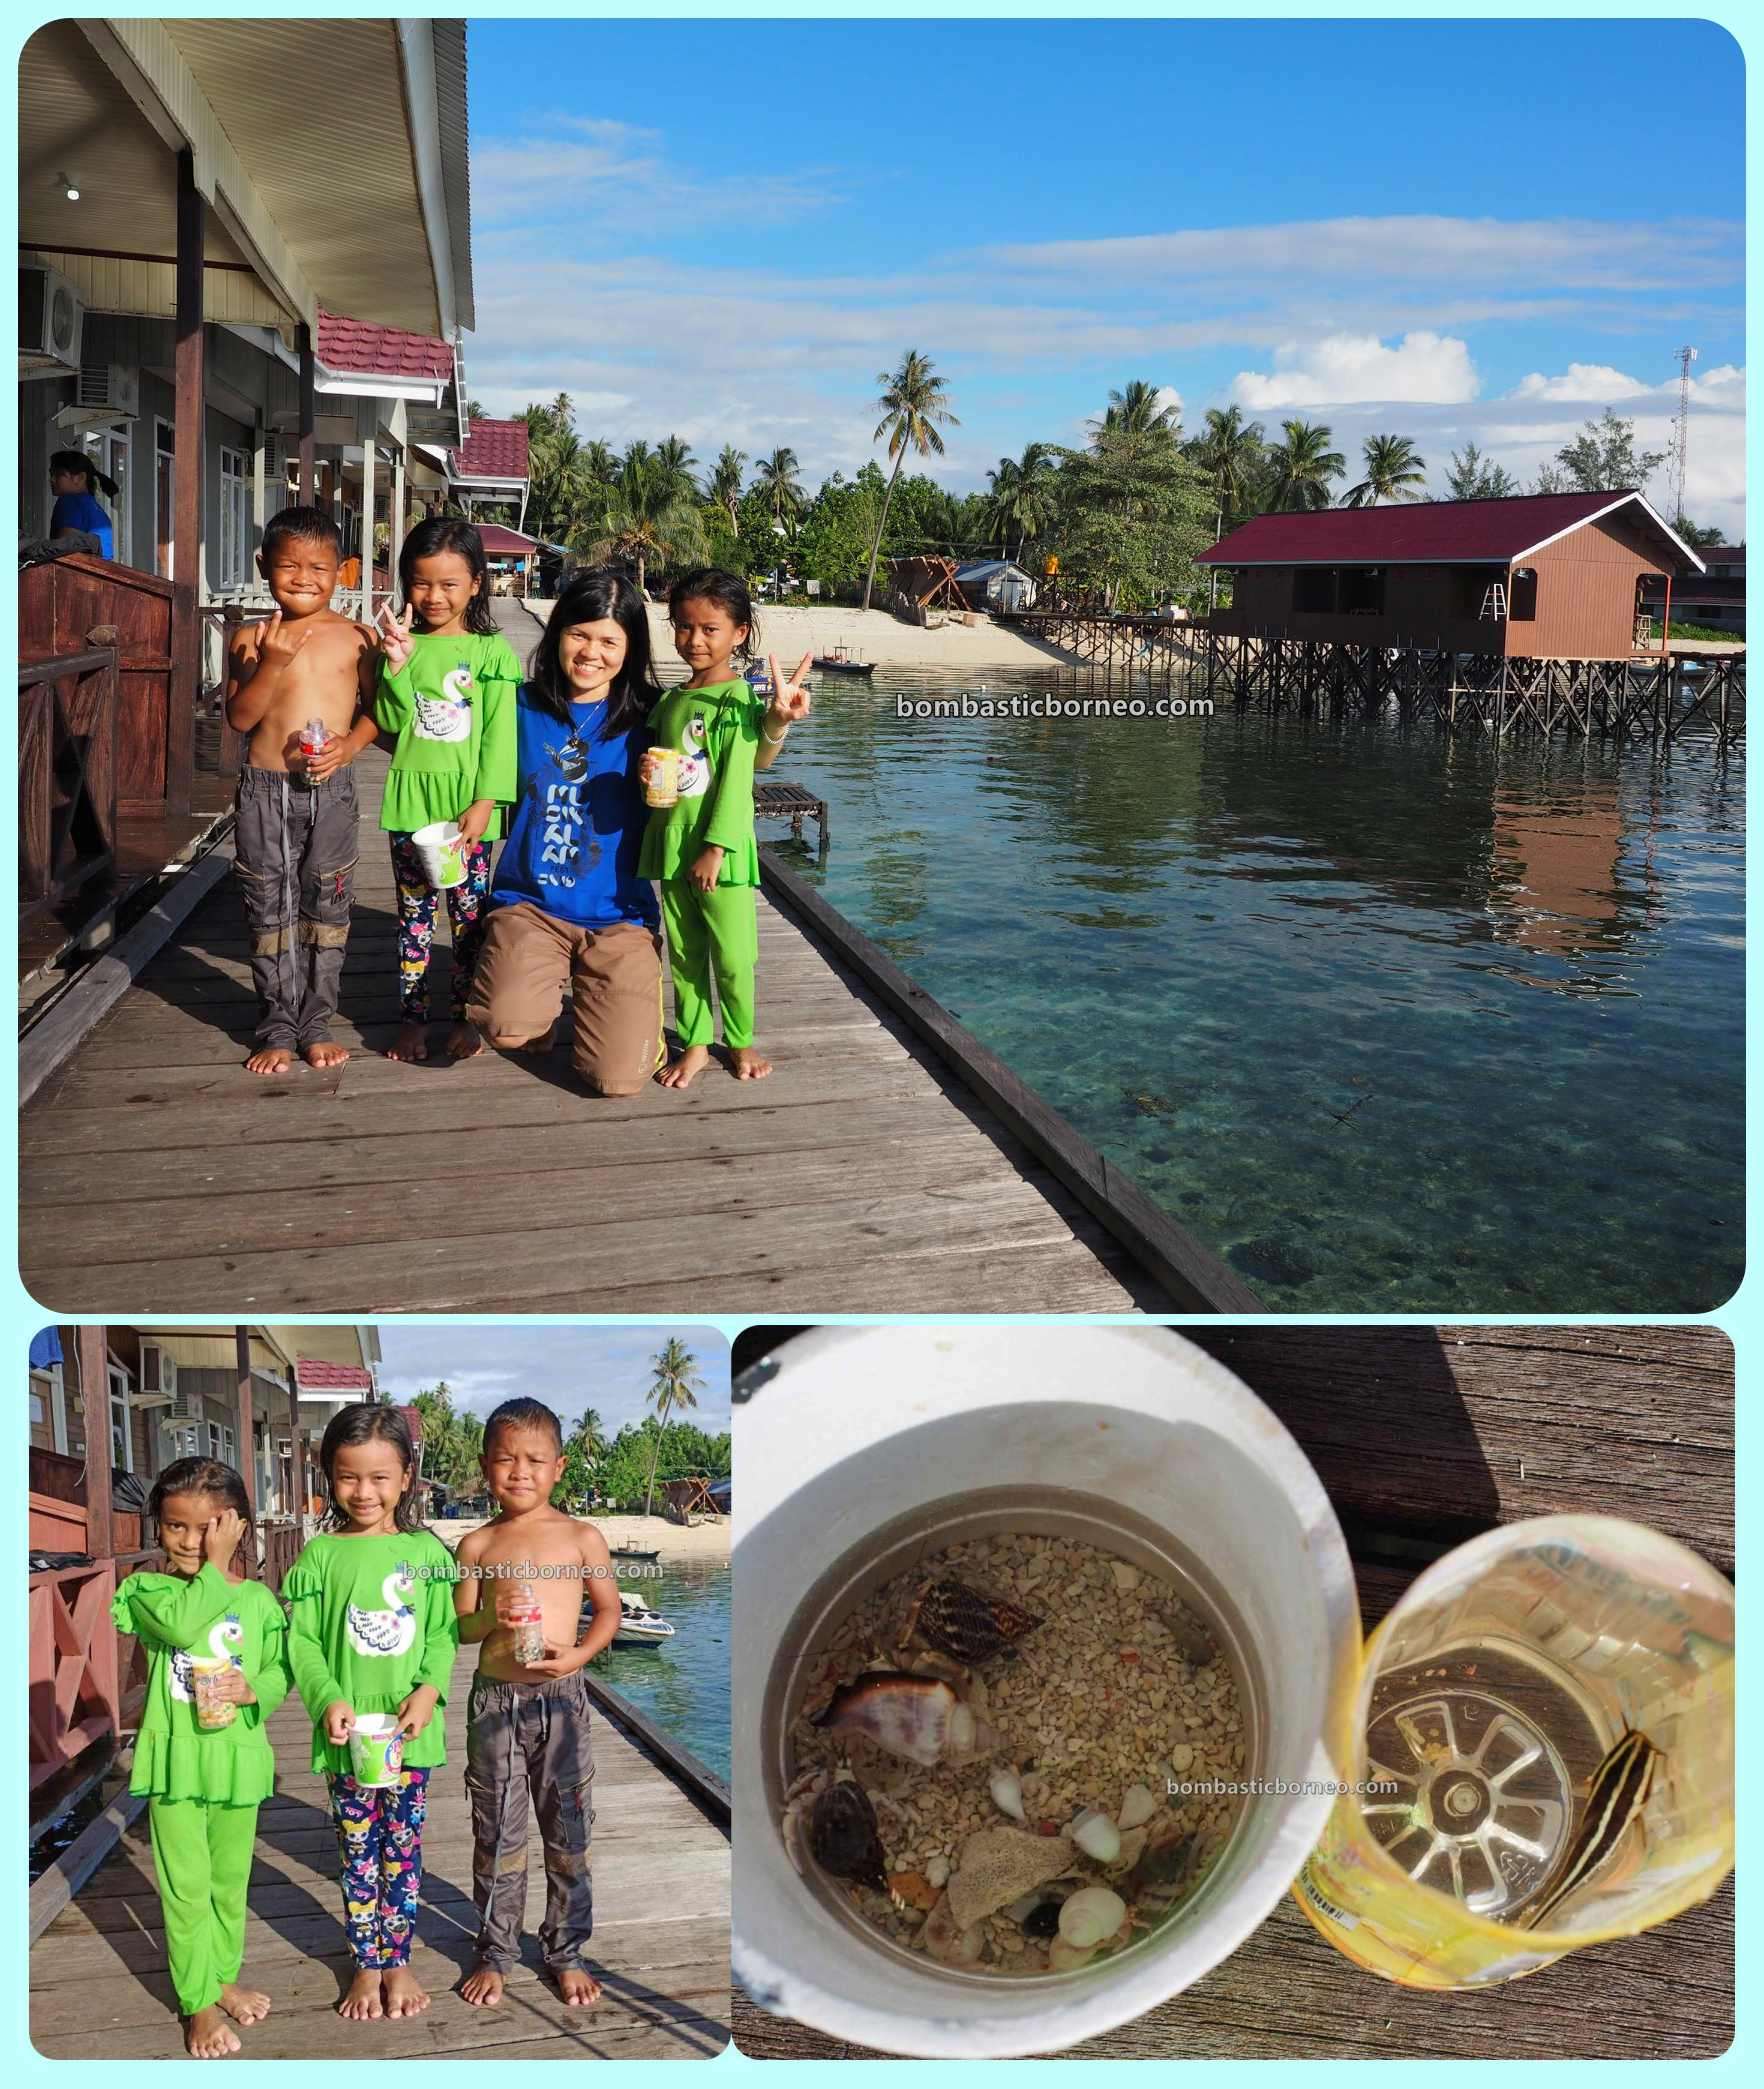 Derawan Island, Sunrise Cottages, Destination, Bajau village, holiday, vacation, Berau, Pesona Indonesia, Sulawesi Sea, Pariwisata, Tourism, travel guide, Trans Border, 跨境婆罗洲印尼, 东加里曼丹达拉湾岛